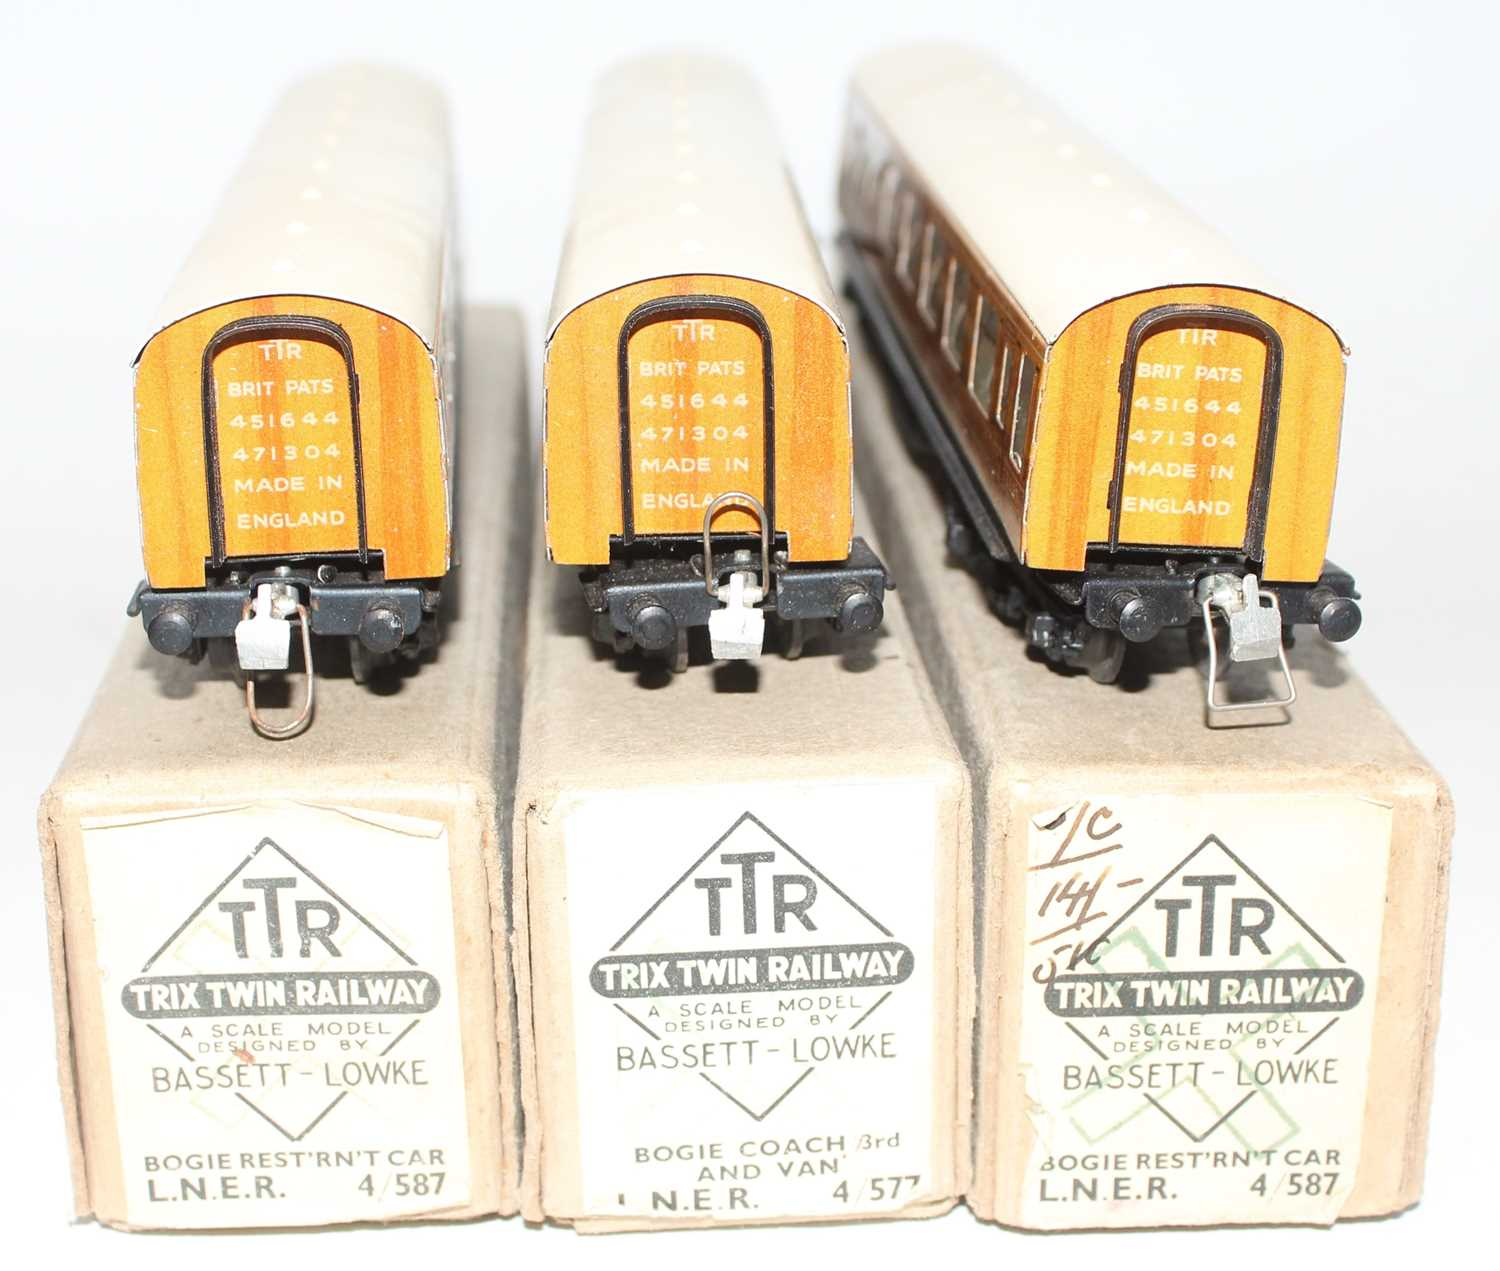 Trix Twin Railway Boxed LNER coach group, 3 examples to include 2x No.4/587 LNER Bogie Resturant Car - Image 3 of 3